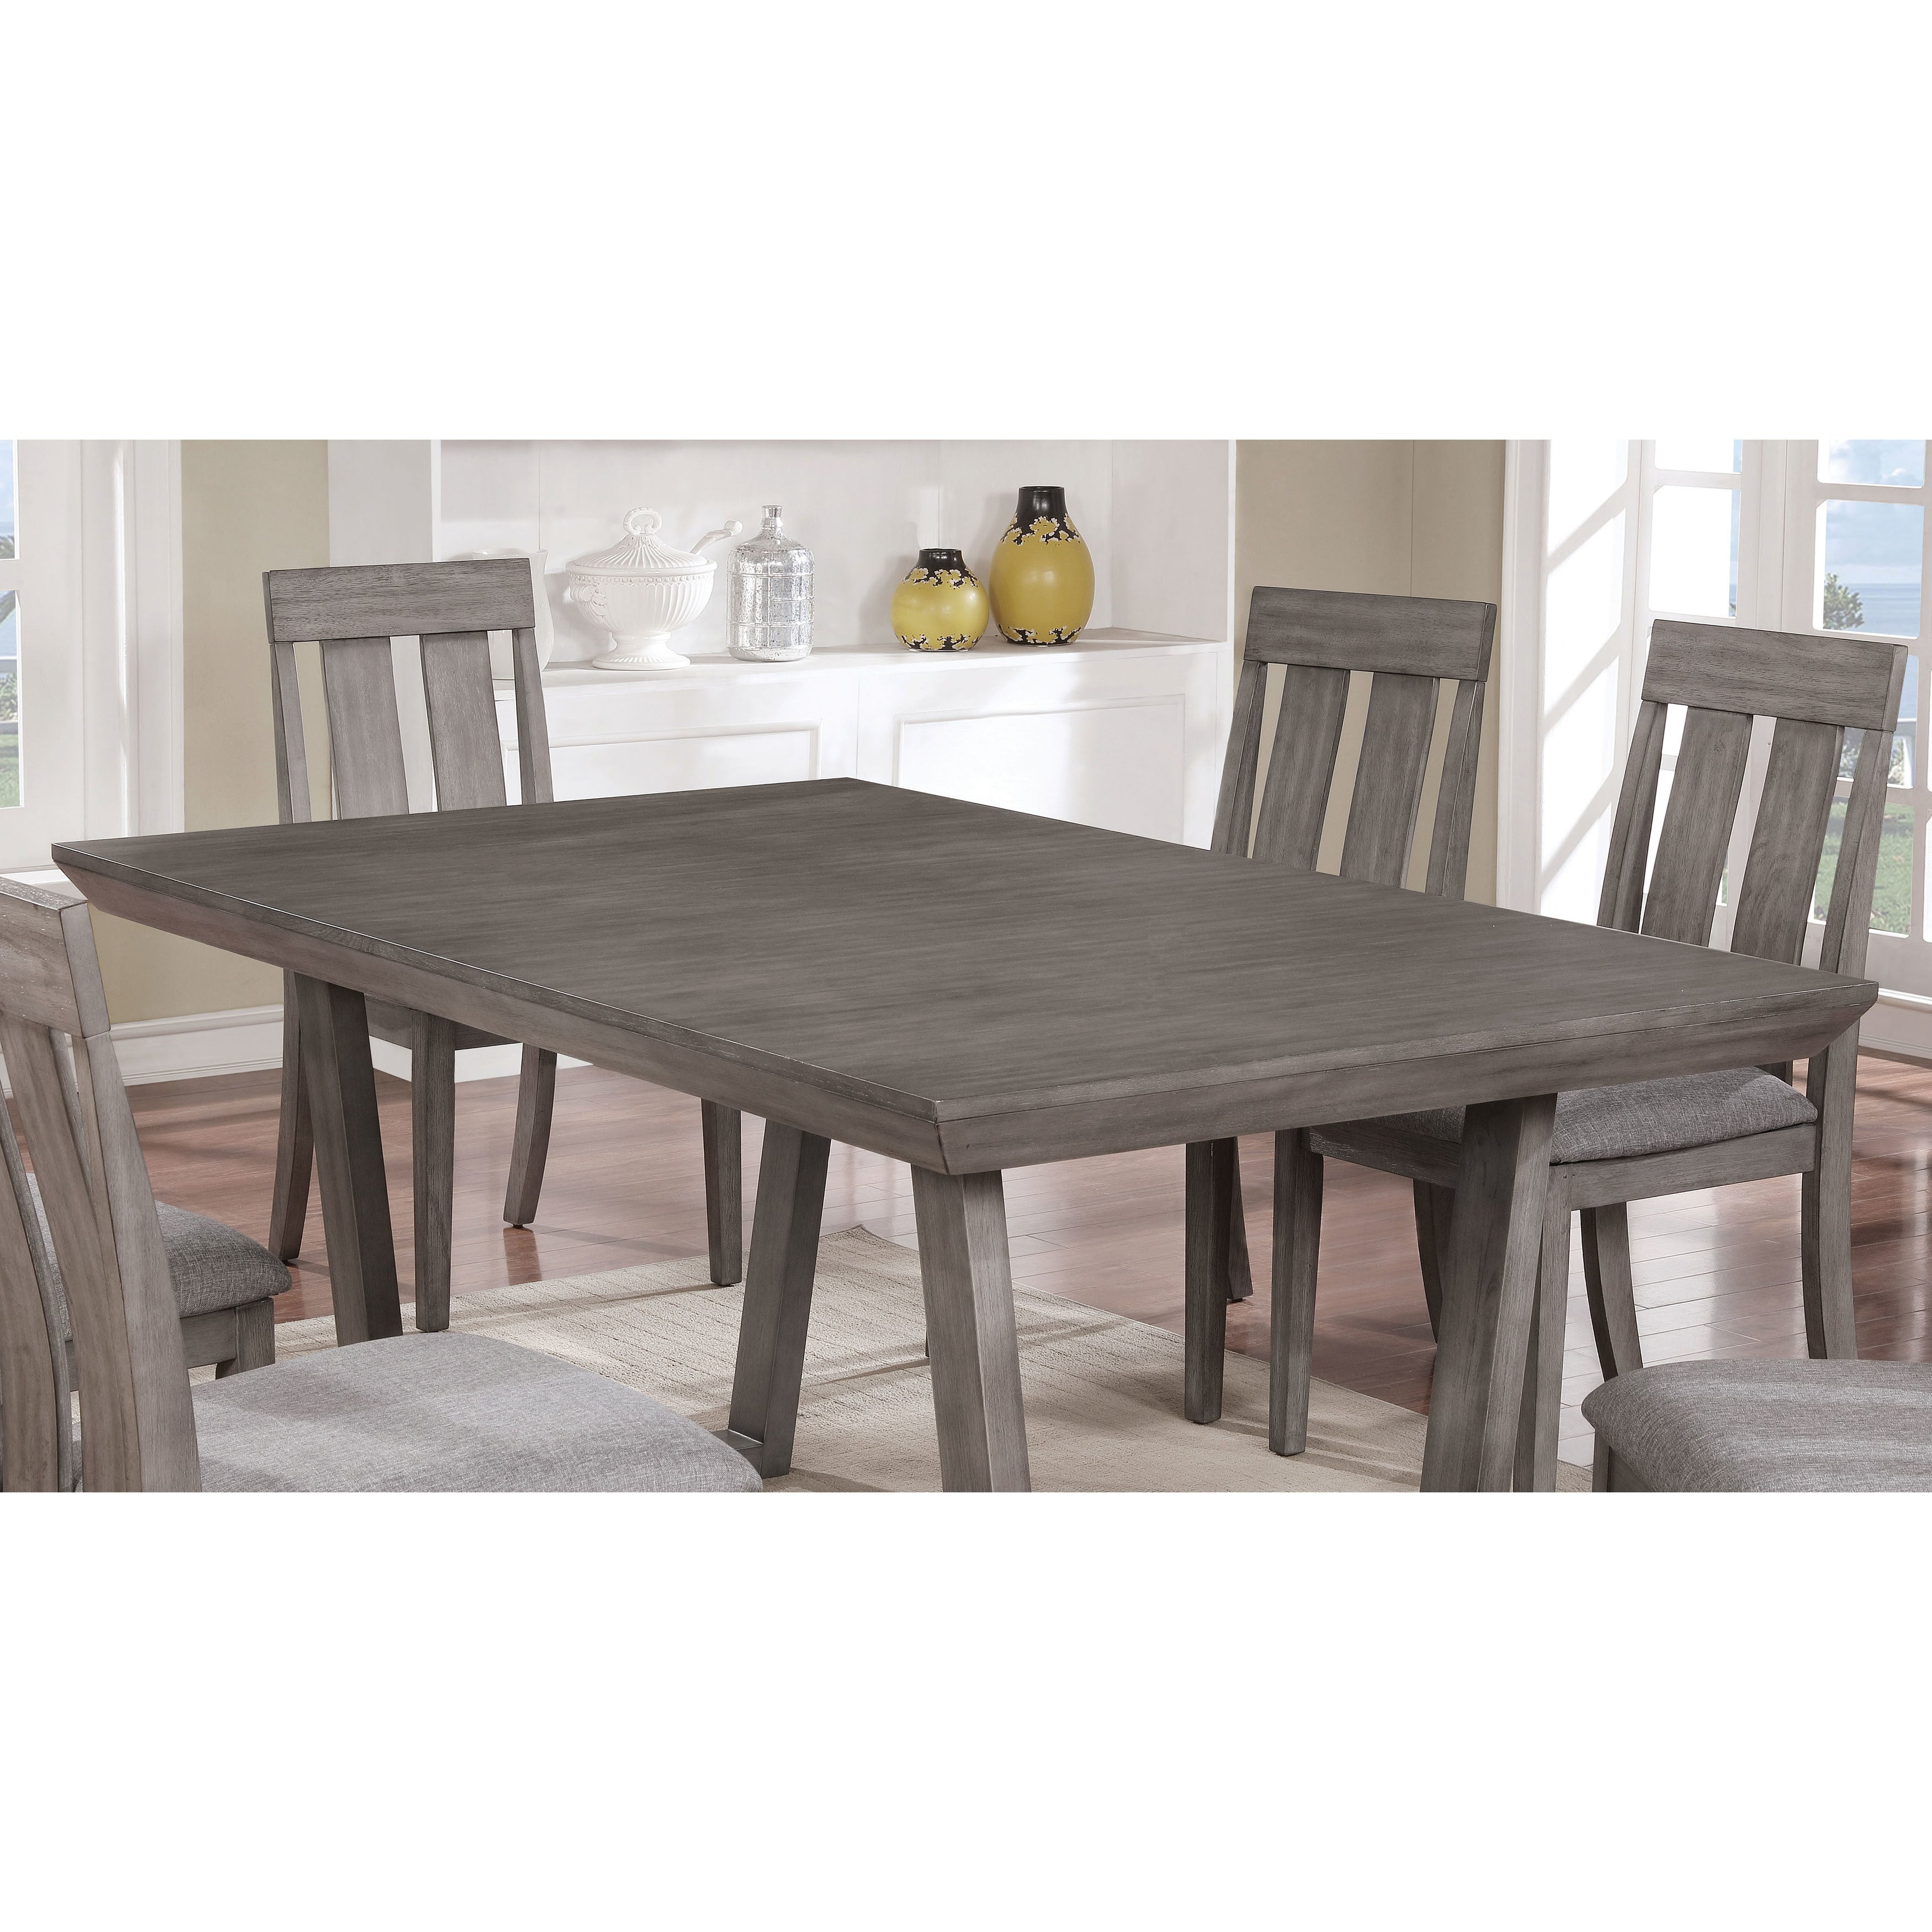 Shop Furniture Of America Galicia Rustic Weathered Grey Wood Inch - 68 inch dining table